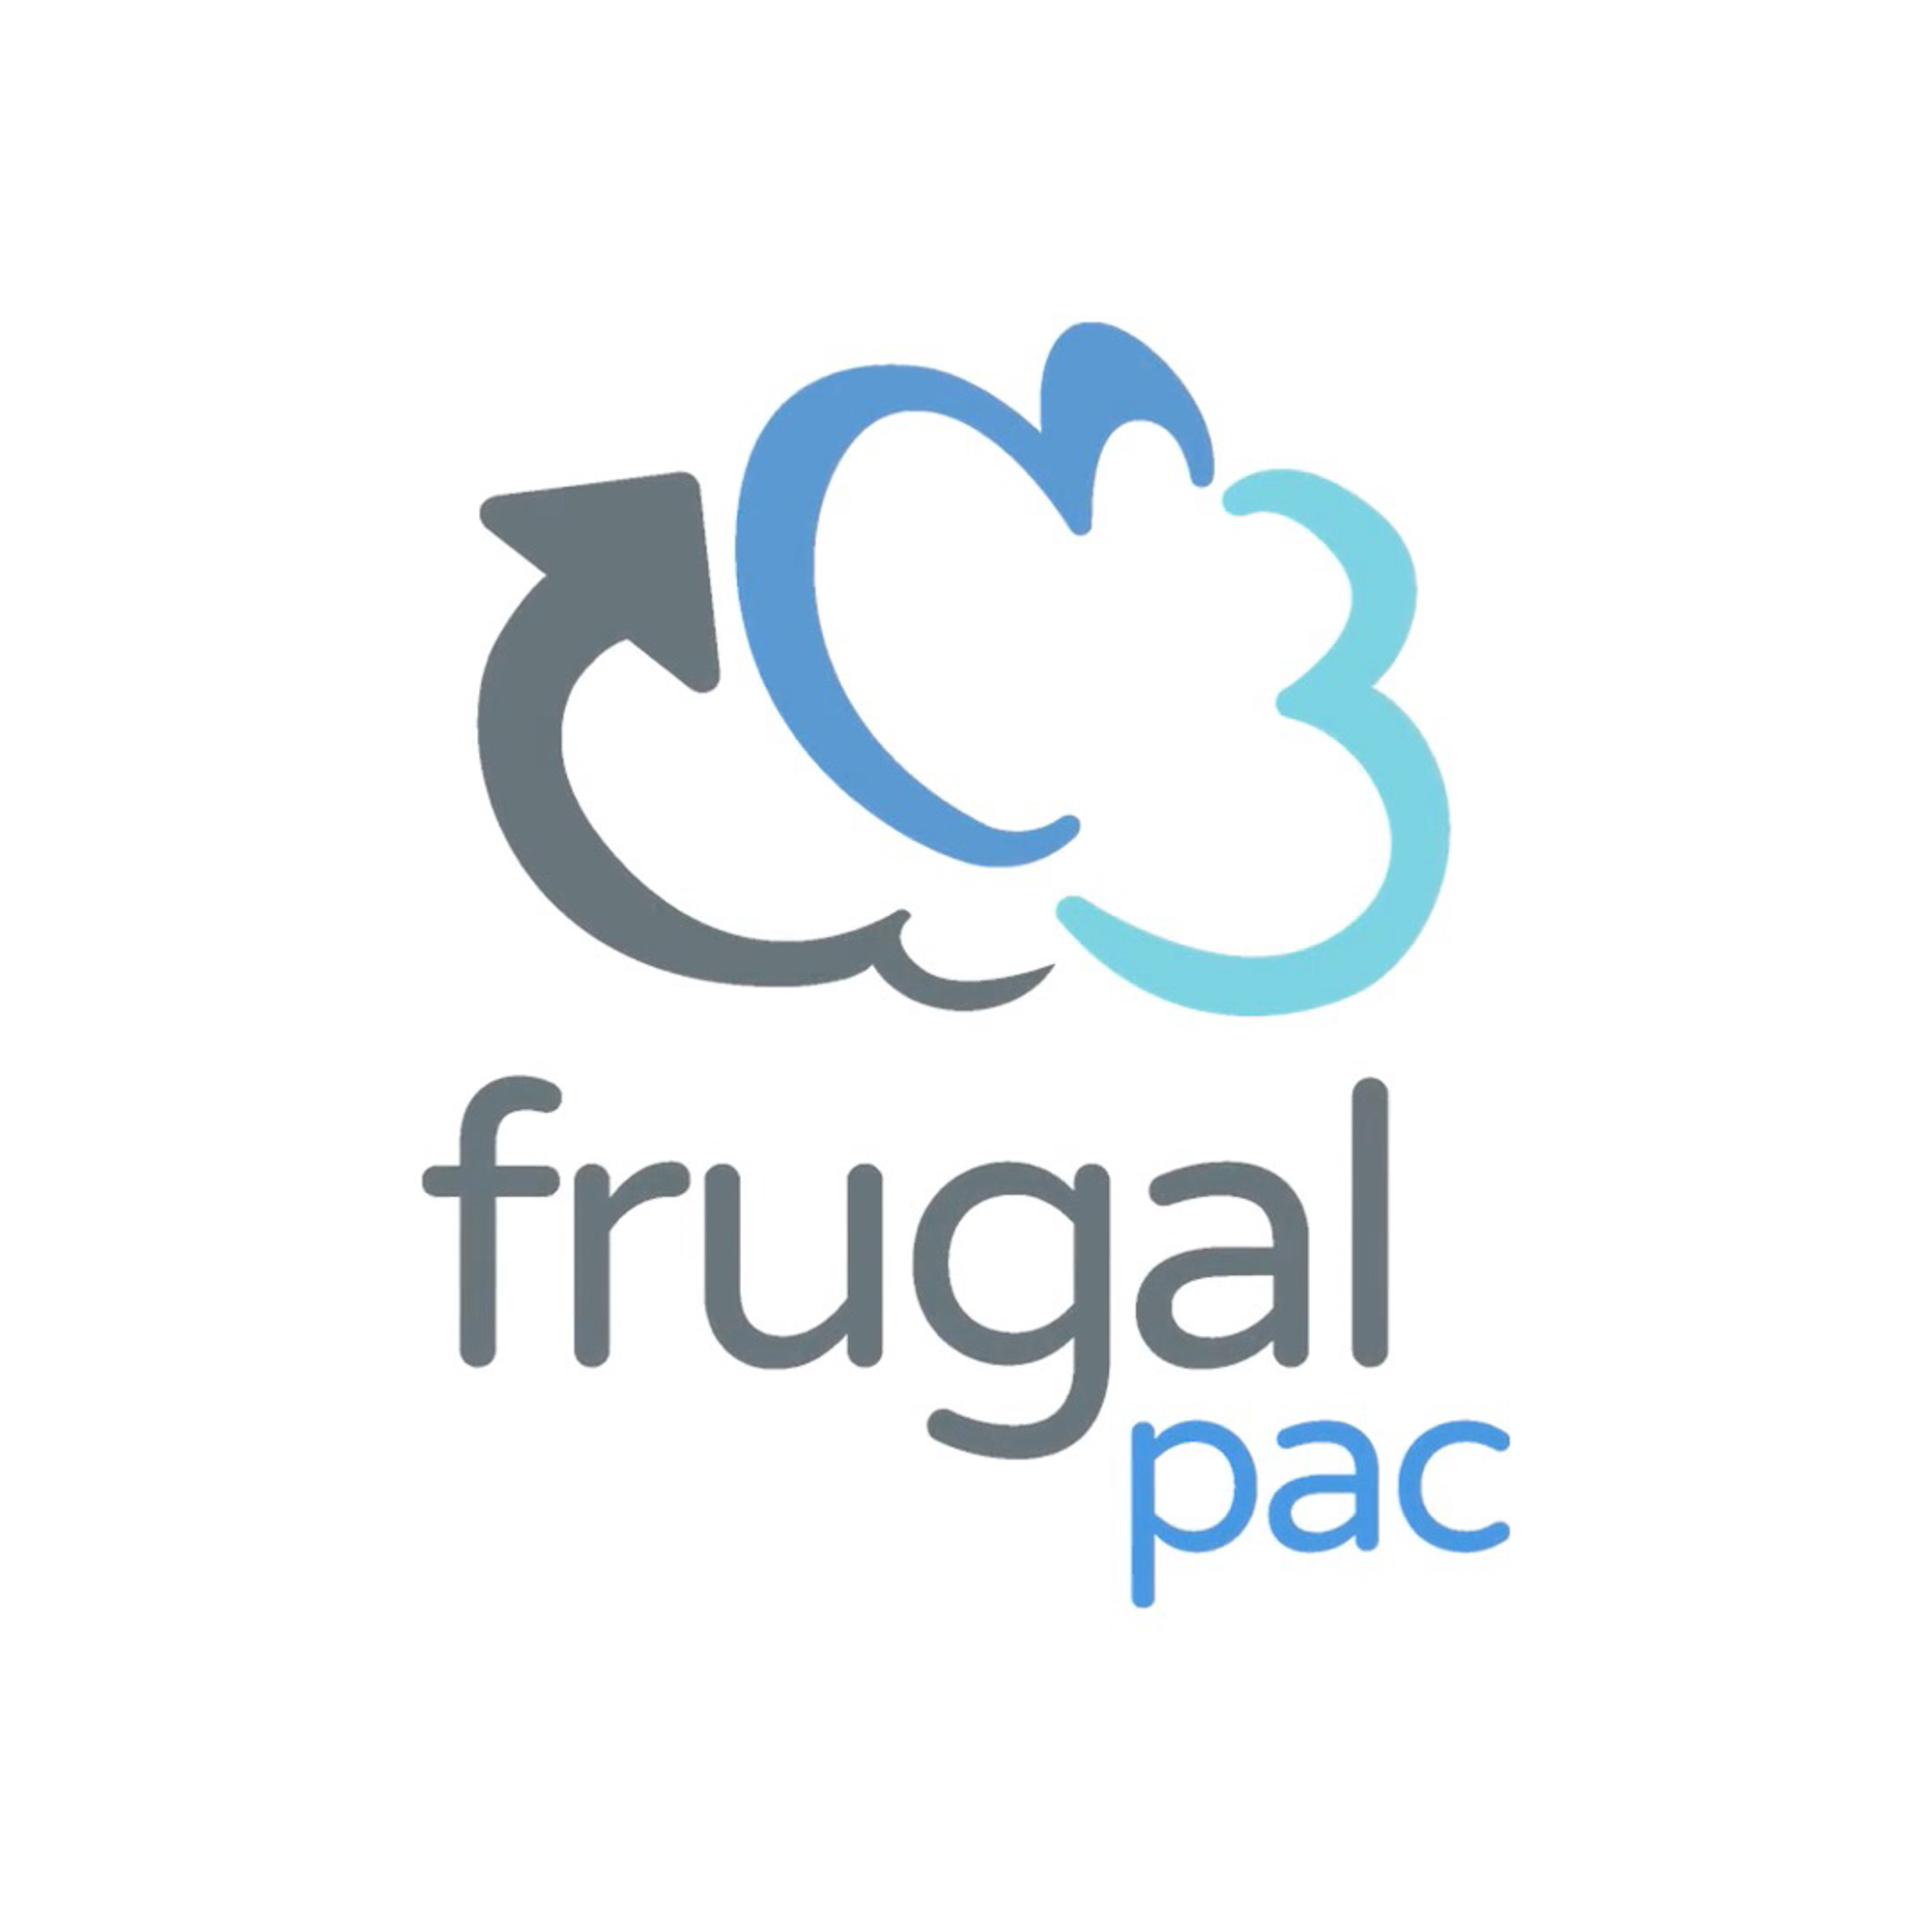 frugal pac